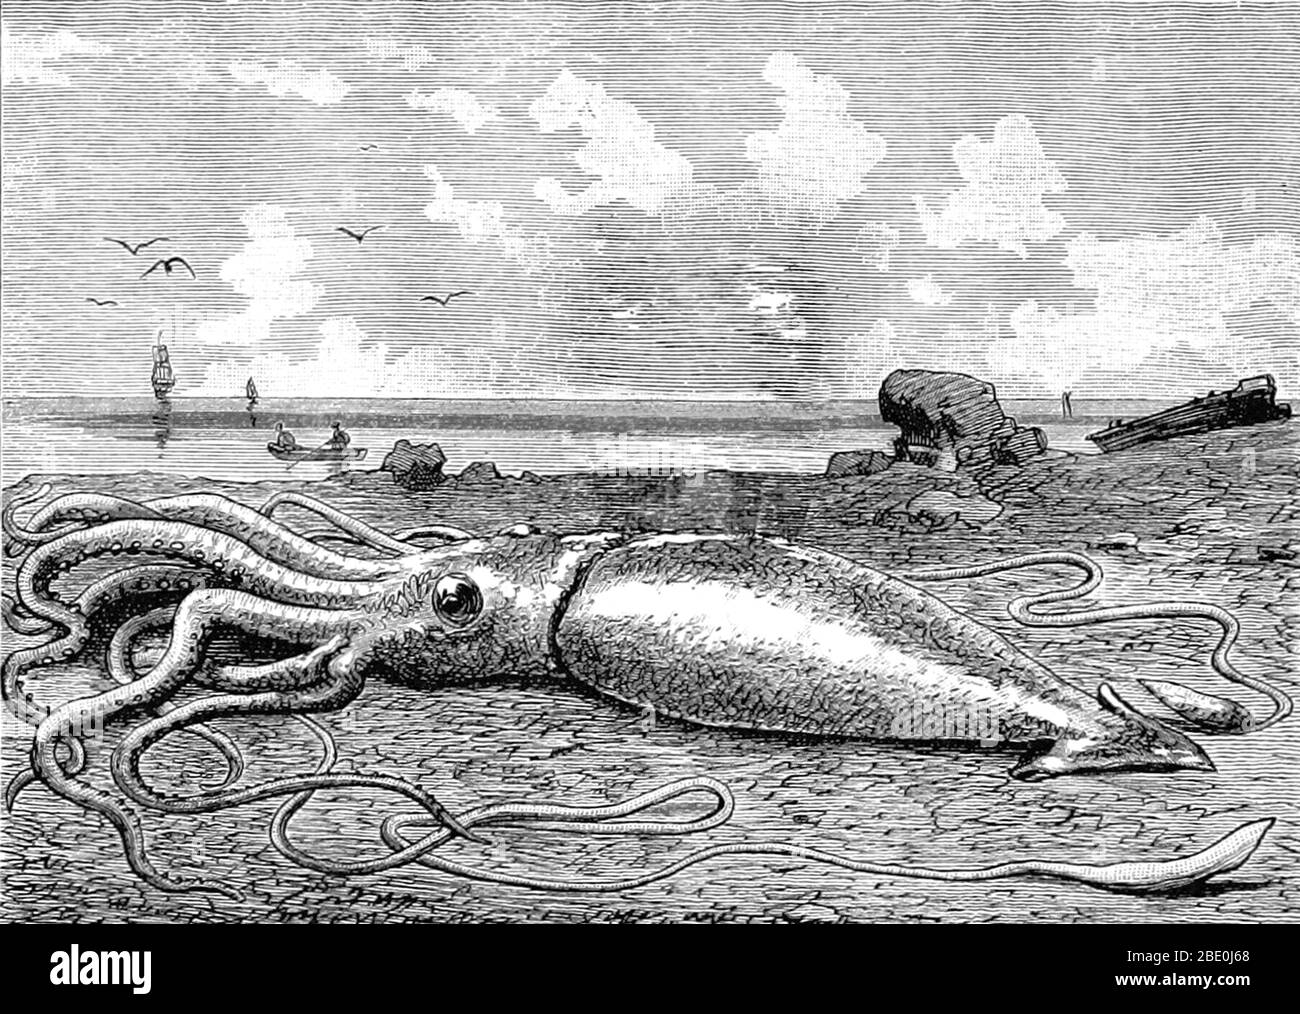 The giant squid (genus Architeuthis) is a deep-ocean dwelling squid in the family Architeuthidae. Giant squid can grow to a tremendous size due to deep-sea gigantism: recent estimates put the maximum size at 43 feet for females and 33 feet for males from the posterior fins to the tip of the two long tentacles. The mantle is about 6.6 feet long (more for females, less for males), and the length of the squid excluding its tentacles (but including head and arms) rarely exceeds 16 feet. Claims of specimens measuring 66 feet or more have not been scientifically documented. Tales of giant squid have Stock Photo